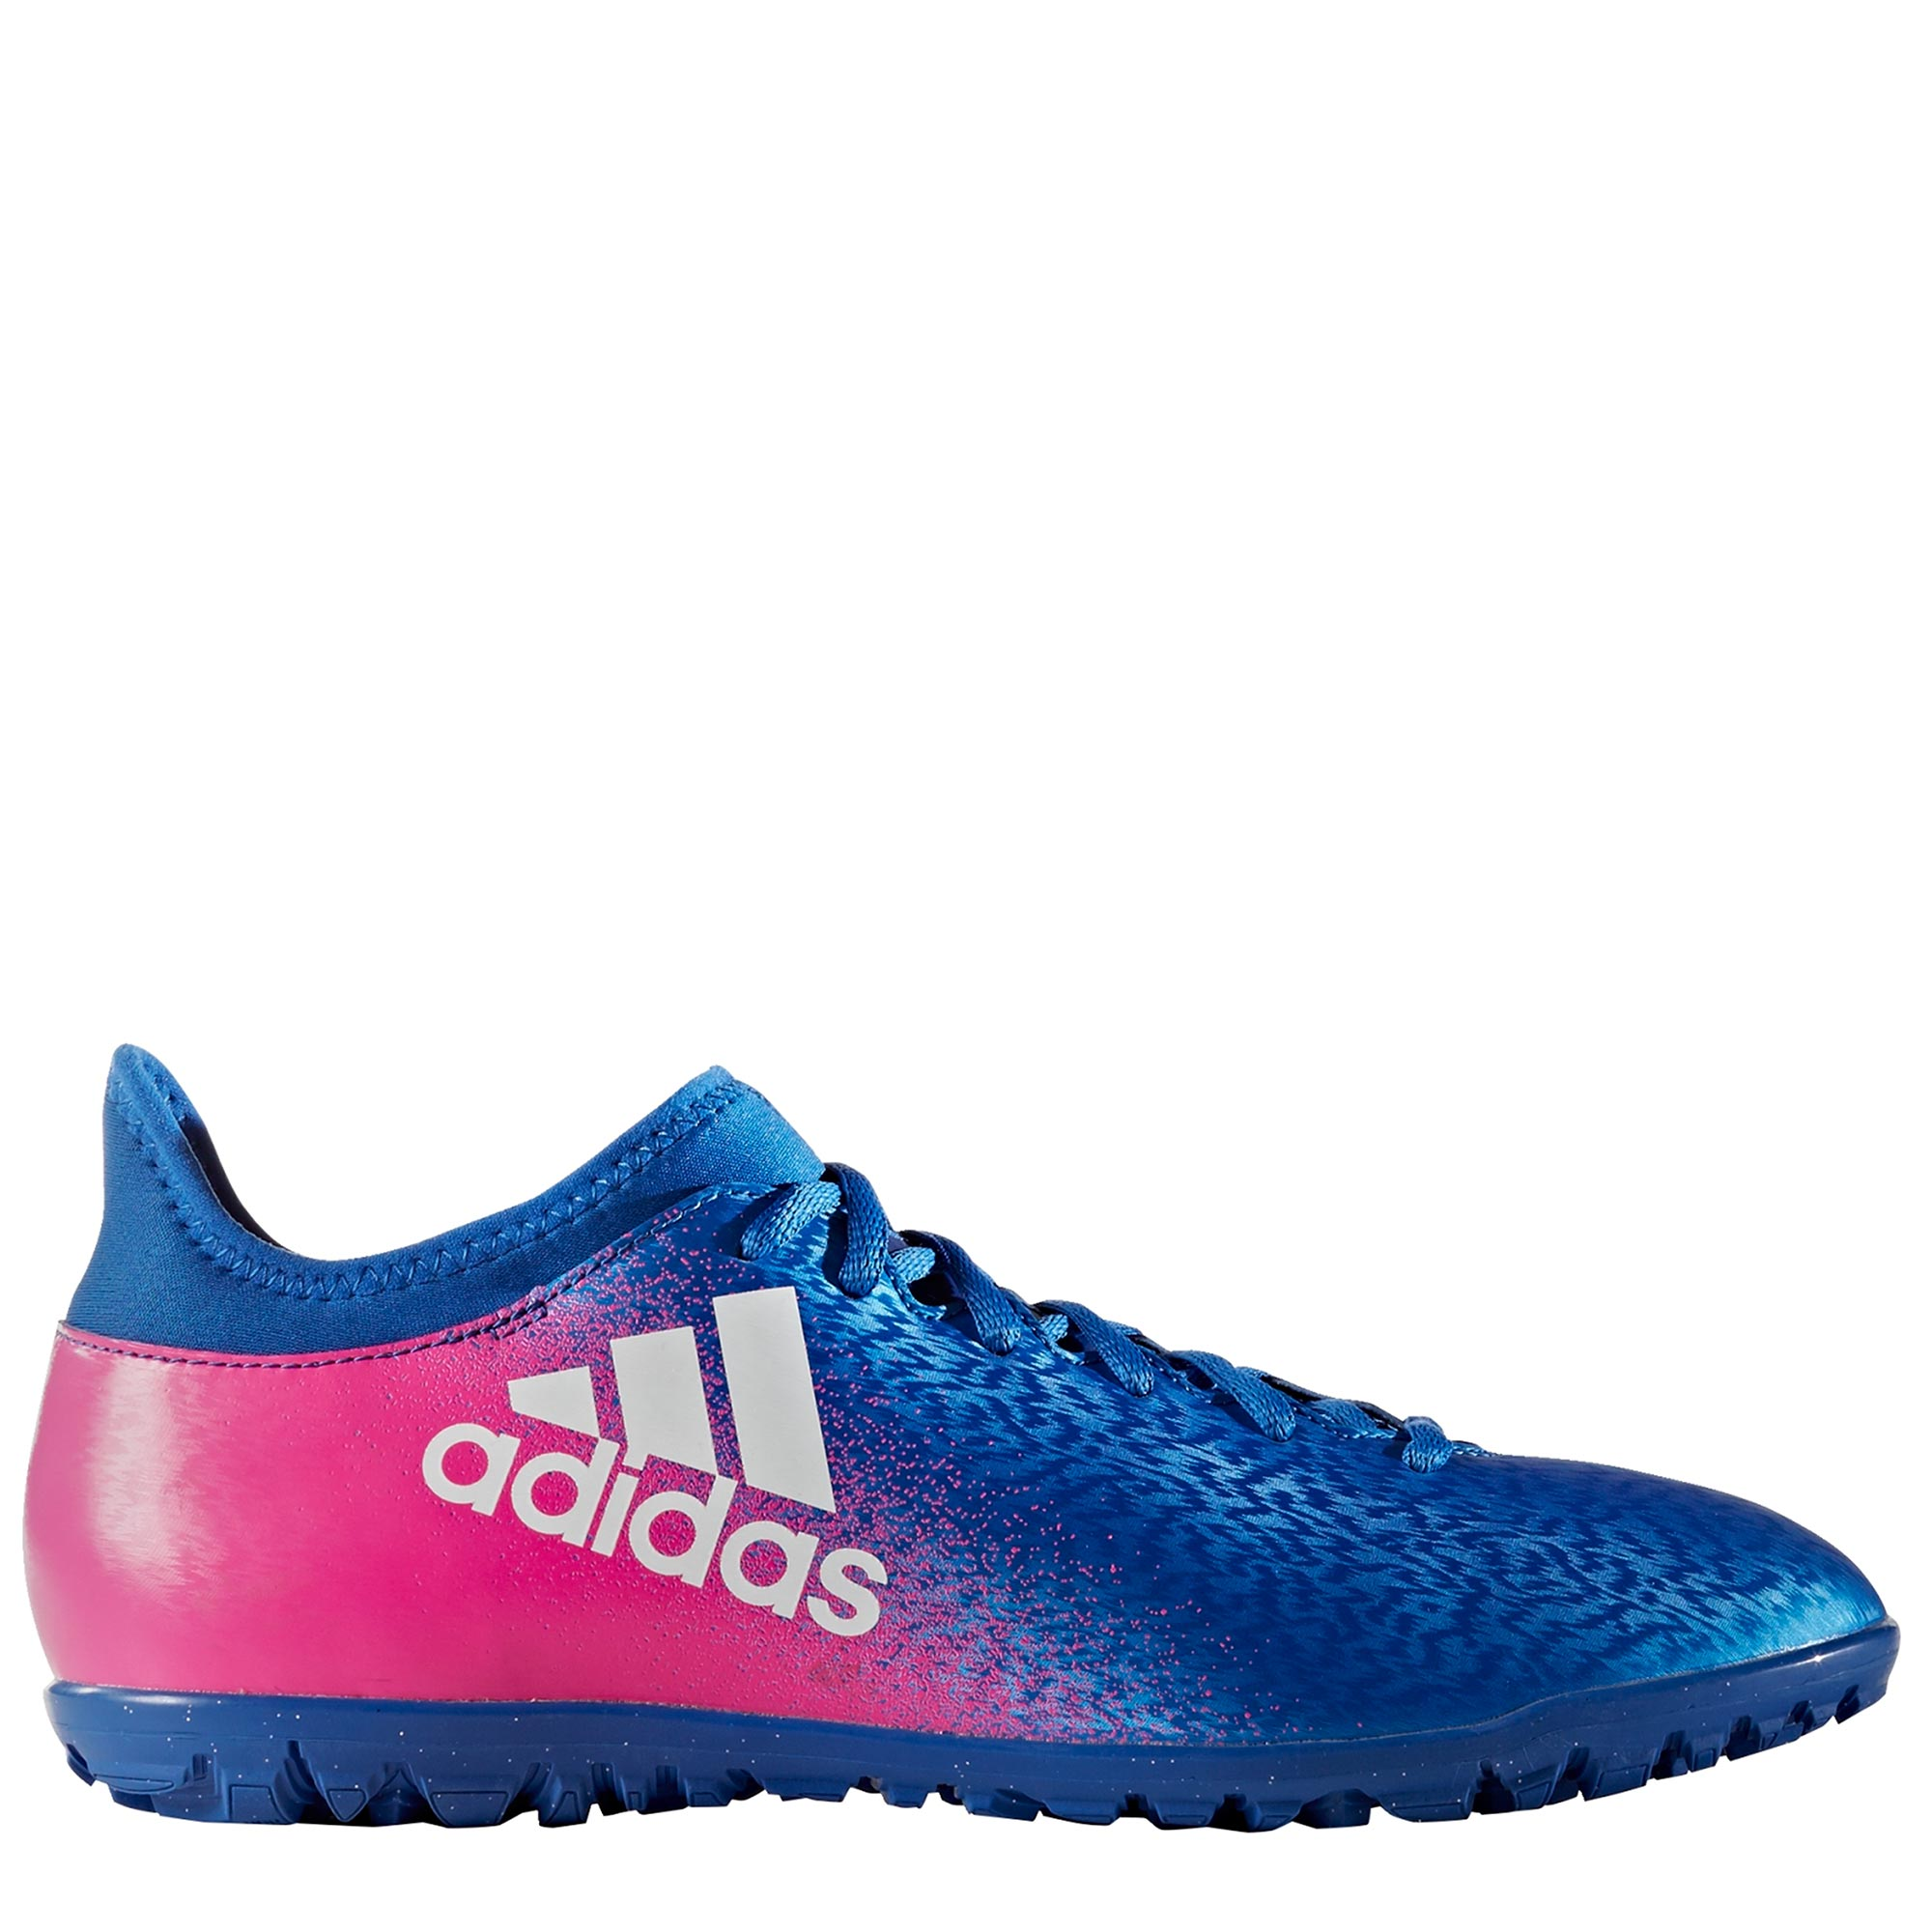 adidas X 16.3 Astroturf Trainers - Blue/White/Shock Pink